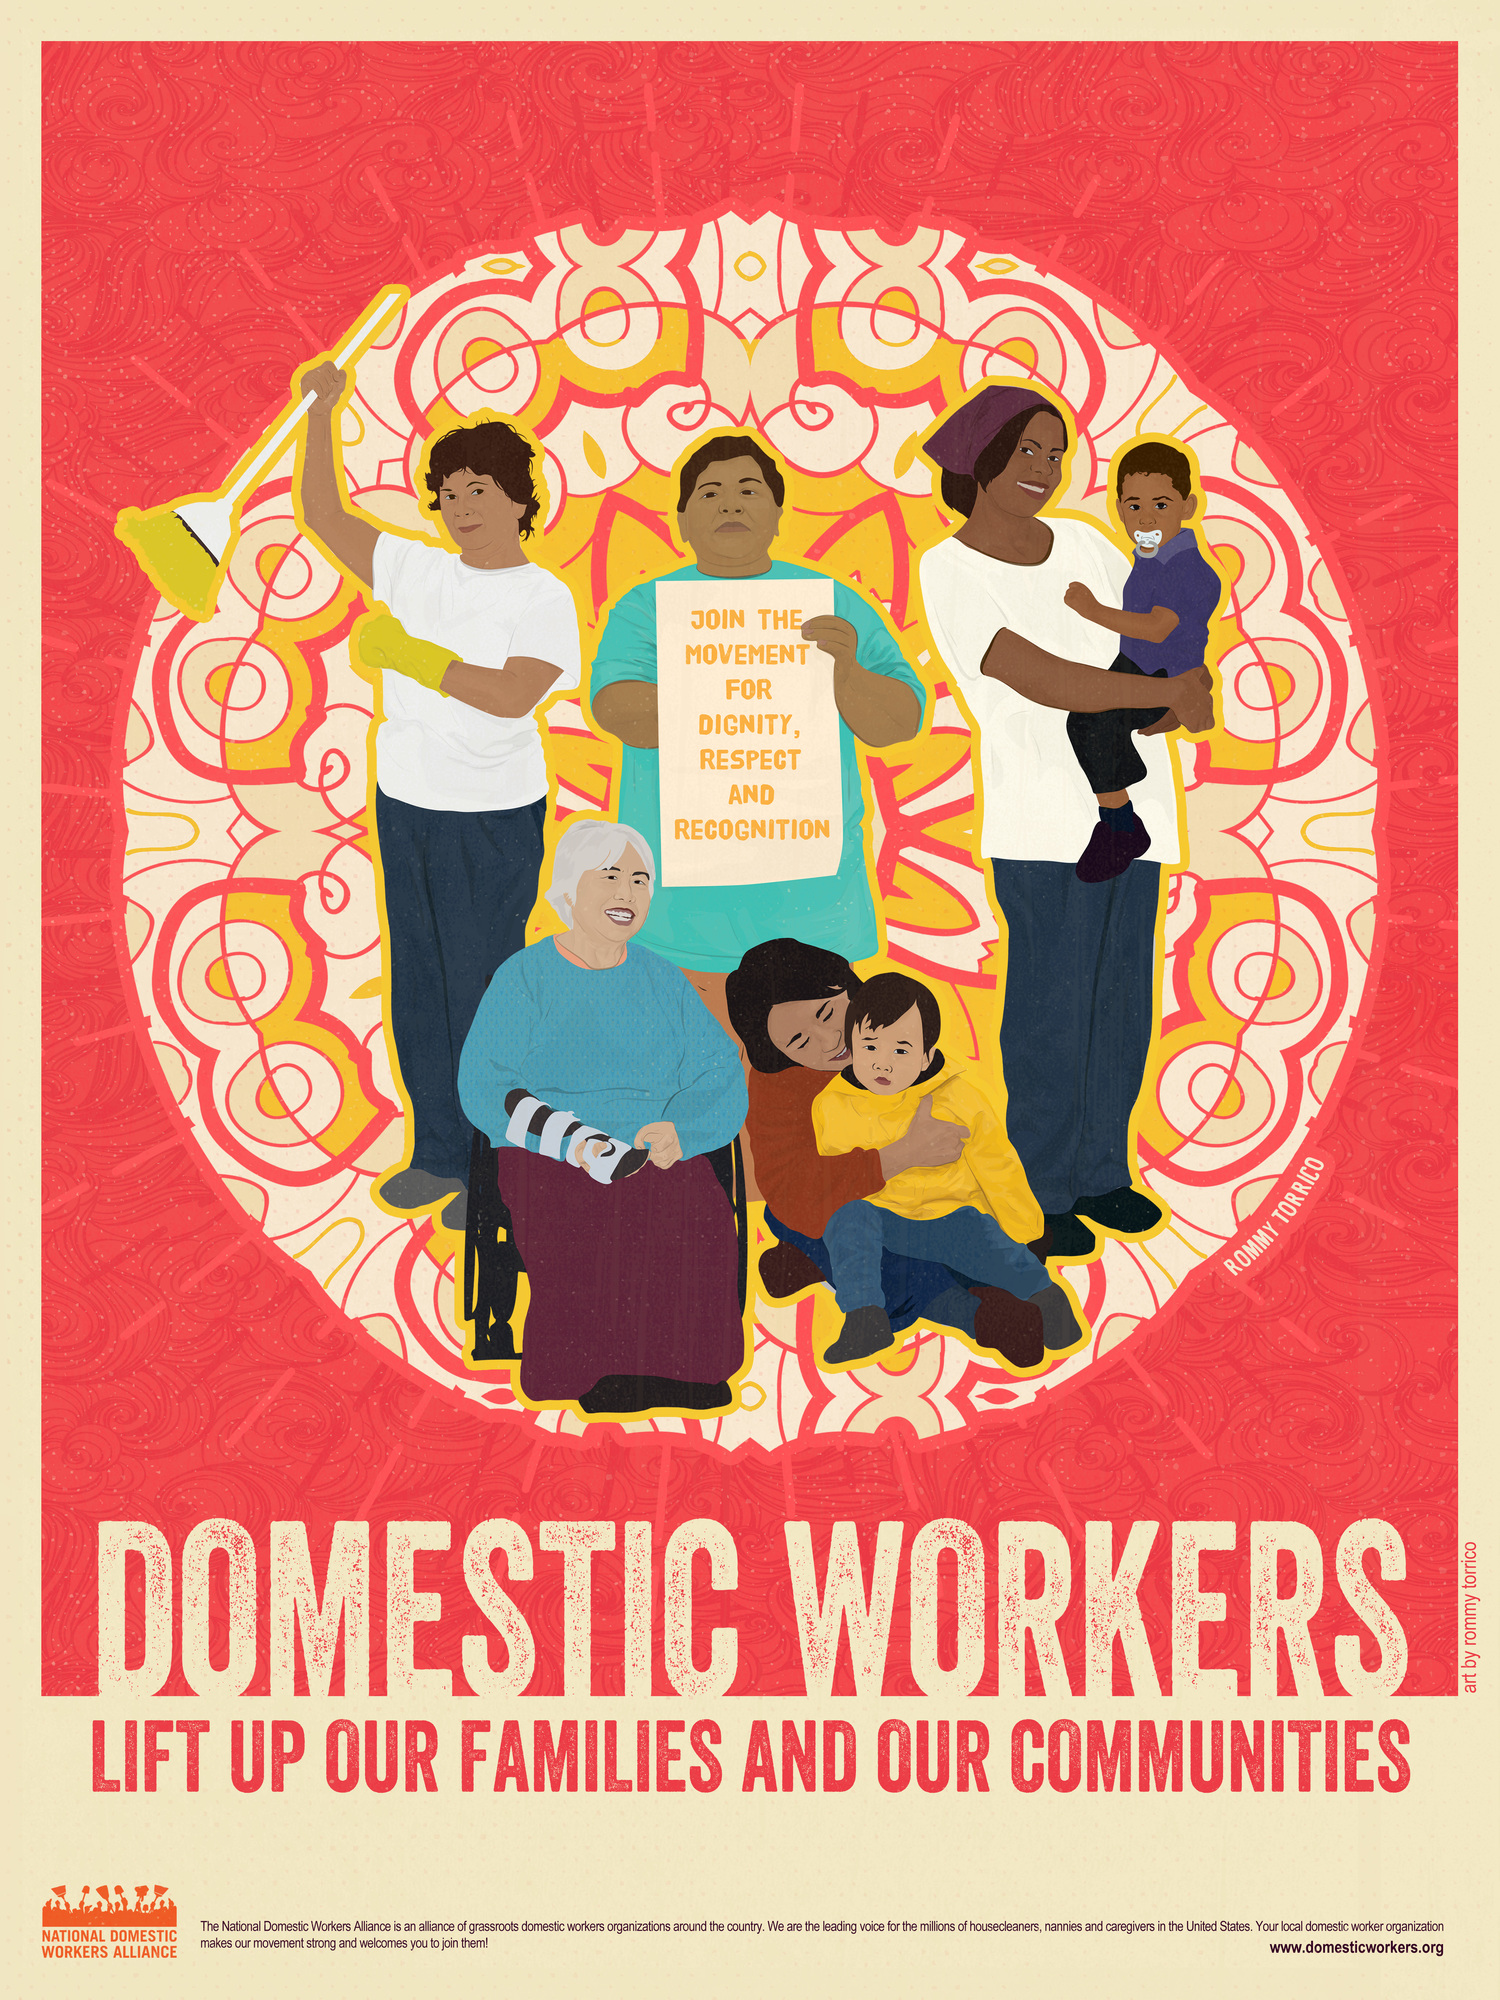 National Domestic Workers Alliance (NDWA)